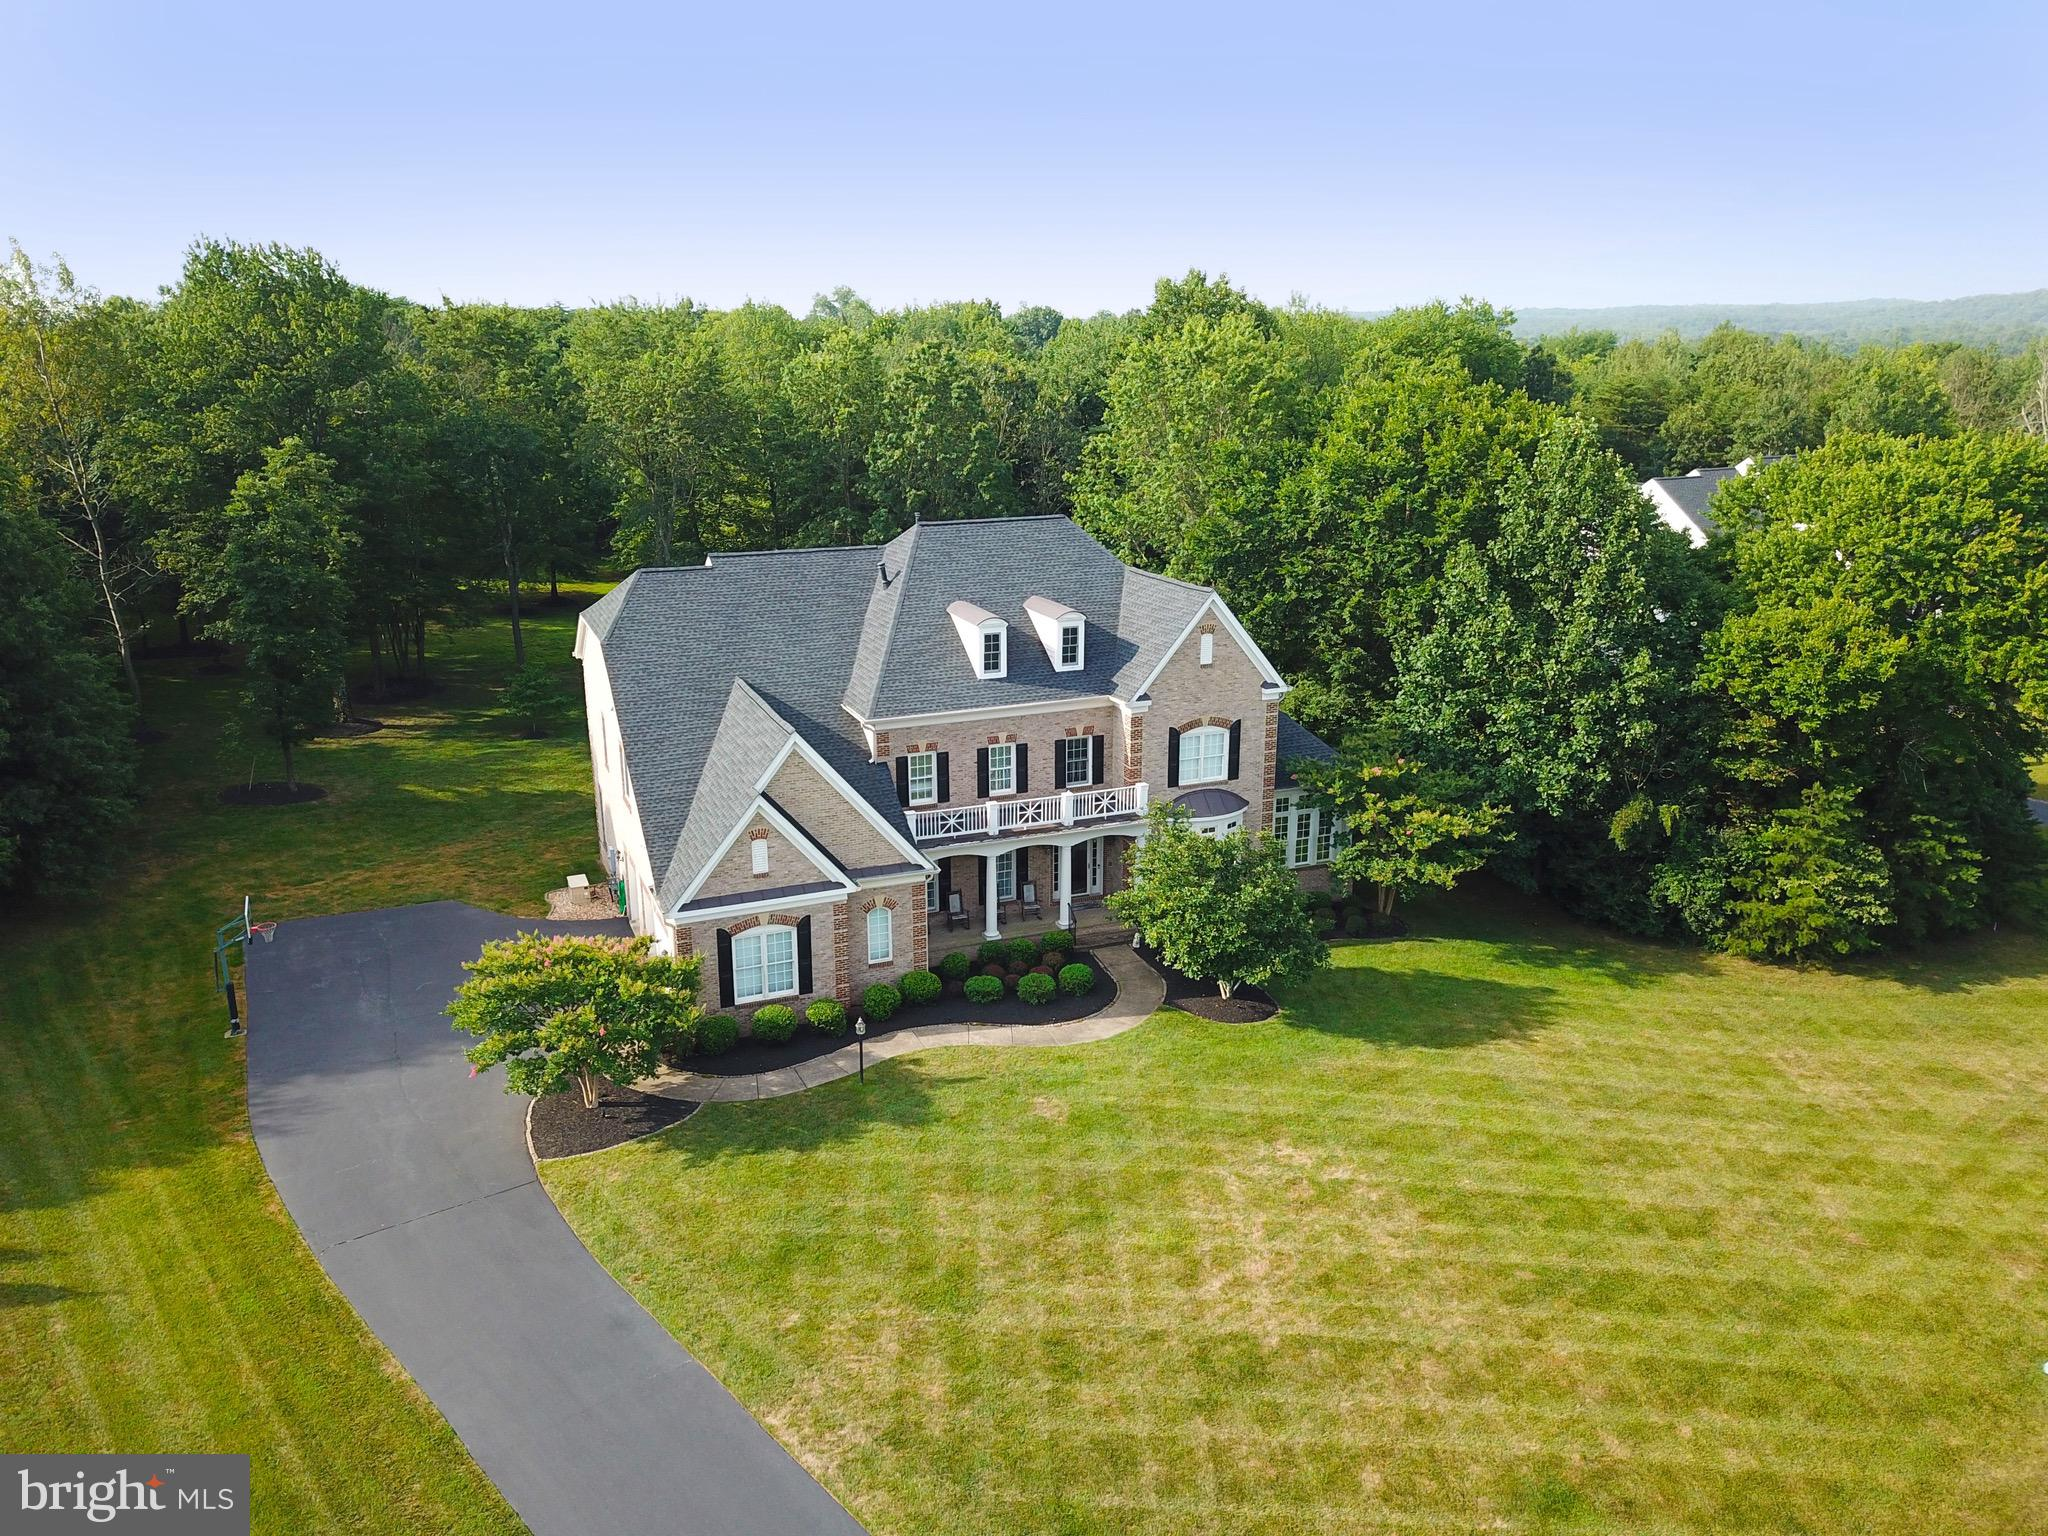 Private 3-acre estate home on 3-acres in Cedar Crest. This Lancaster II model by Equity Homes is 4-s